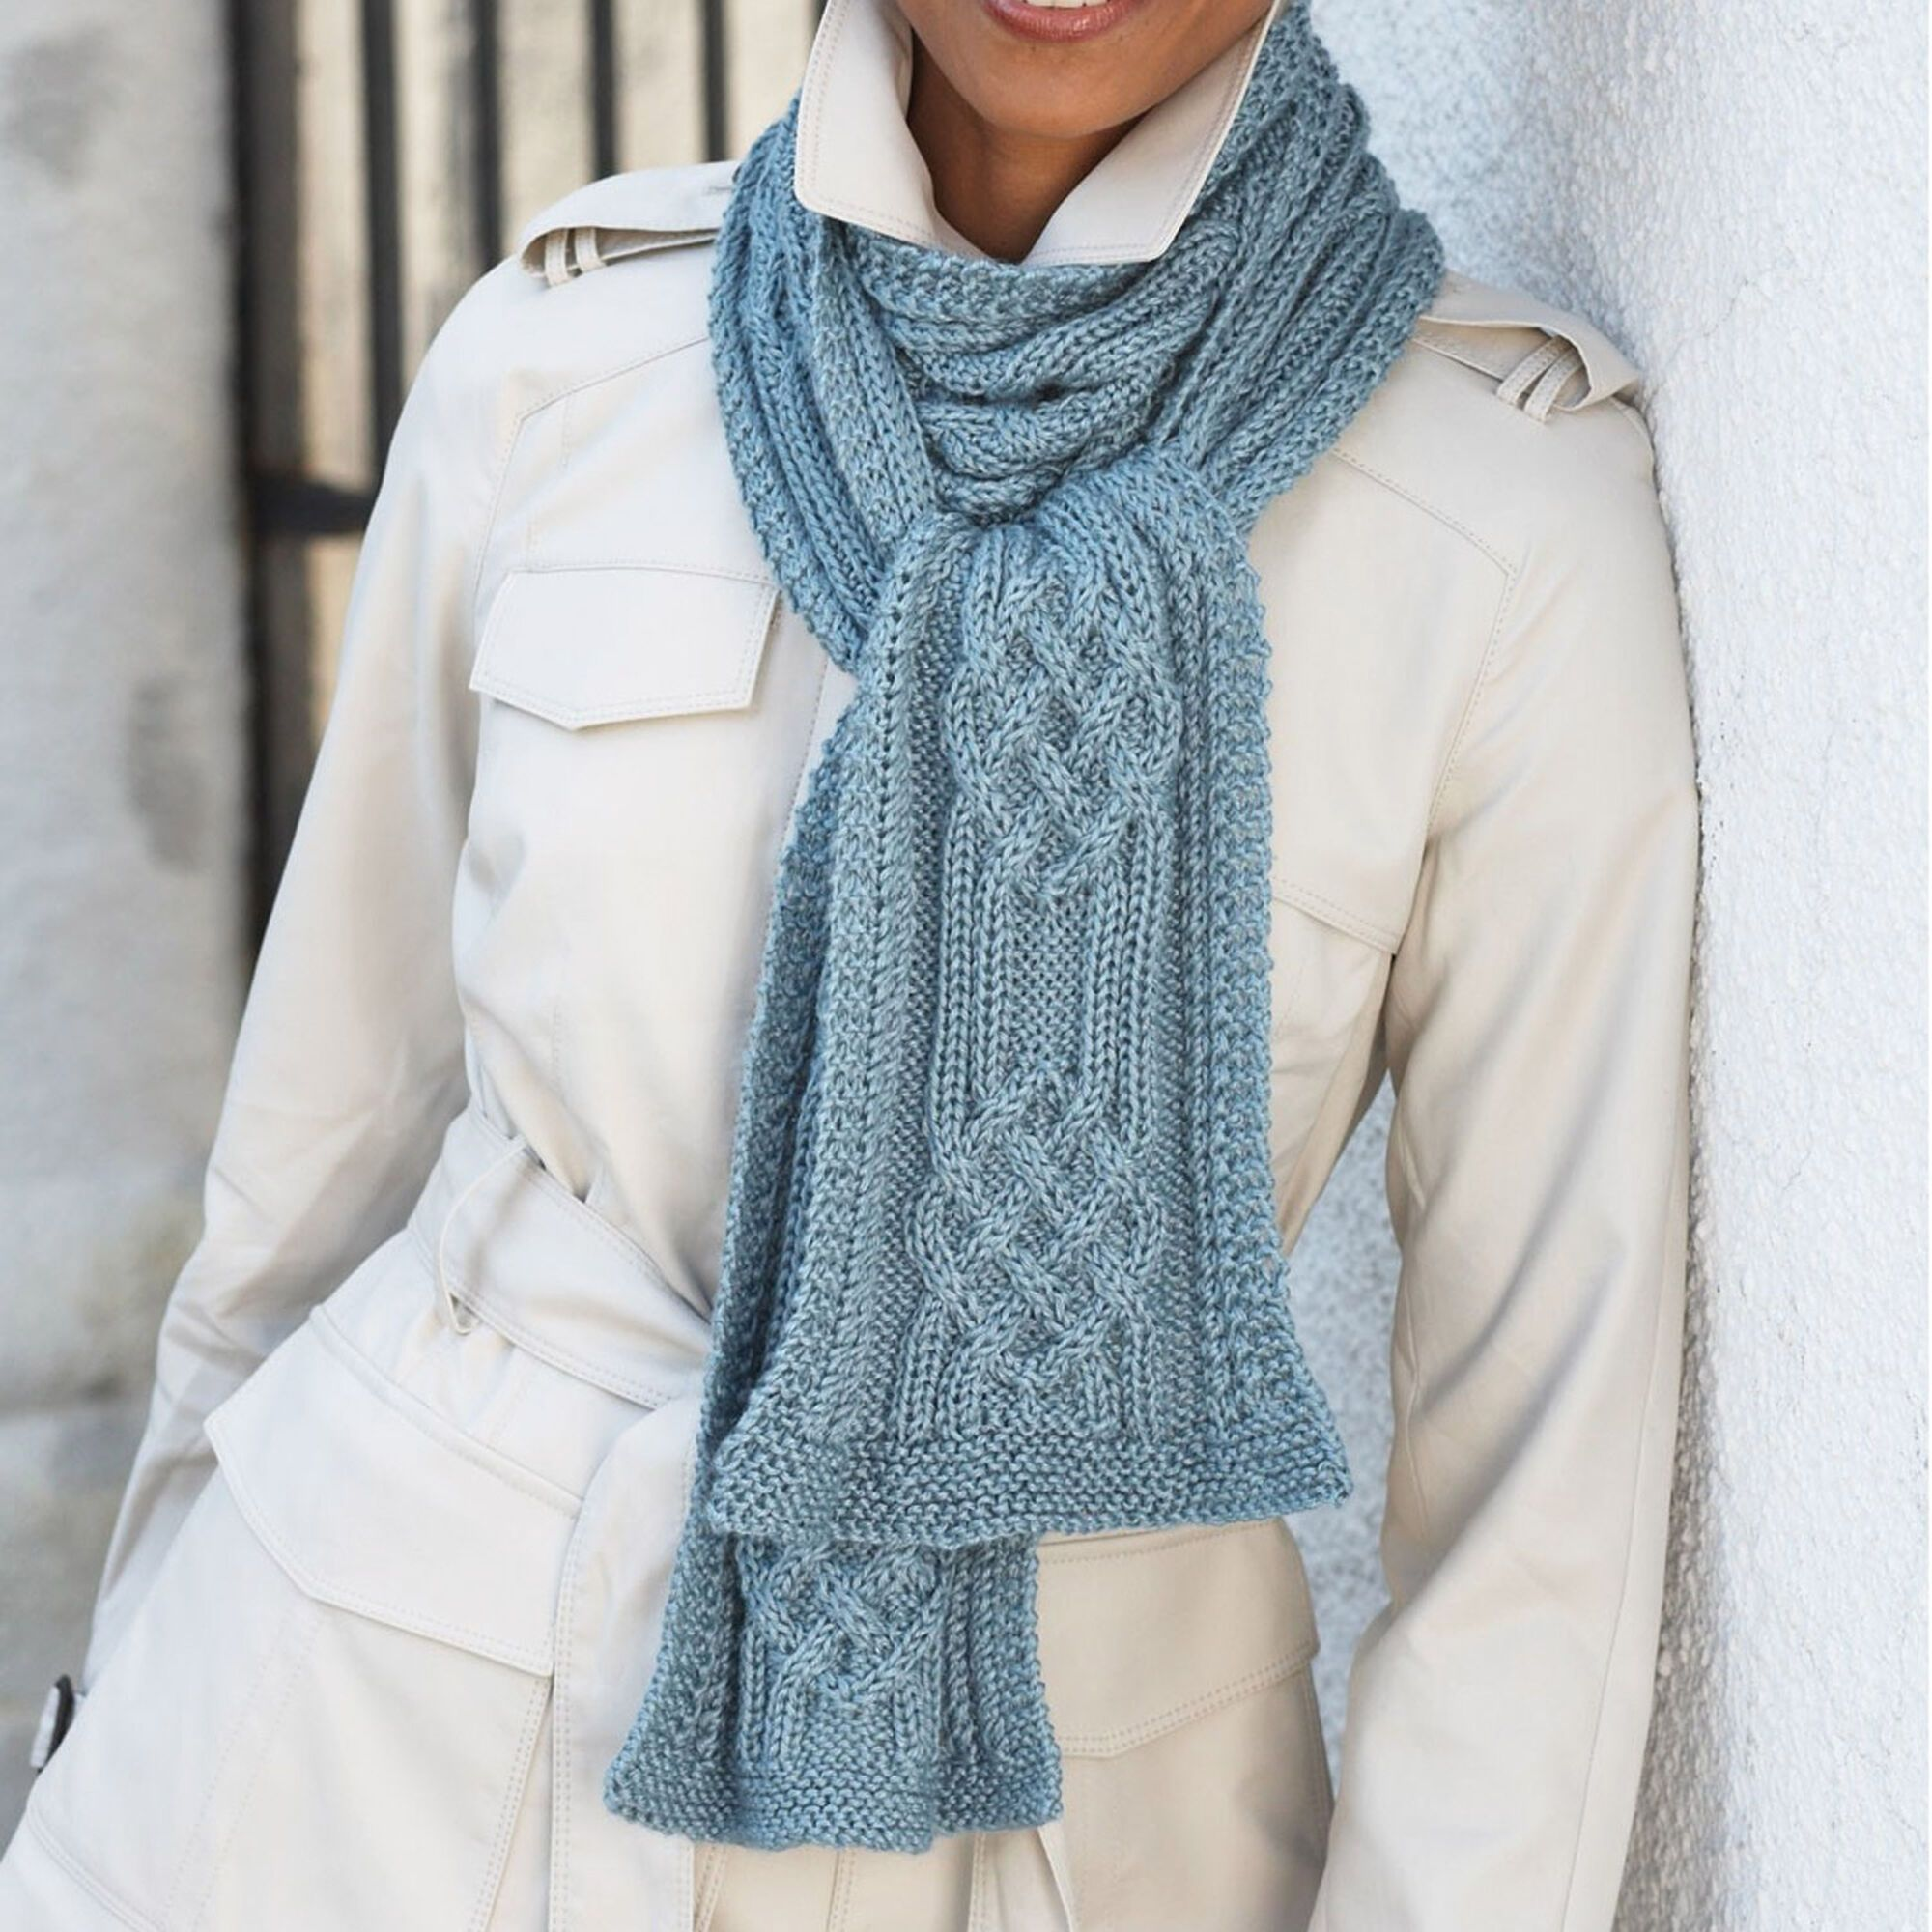 Patons Scarf Pattern | Yarnspirations in 2020 | Scarf ...